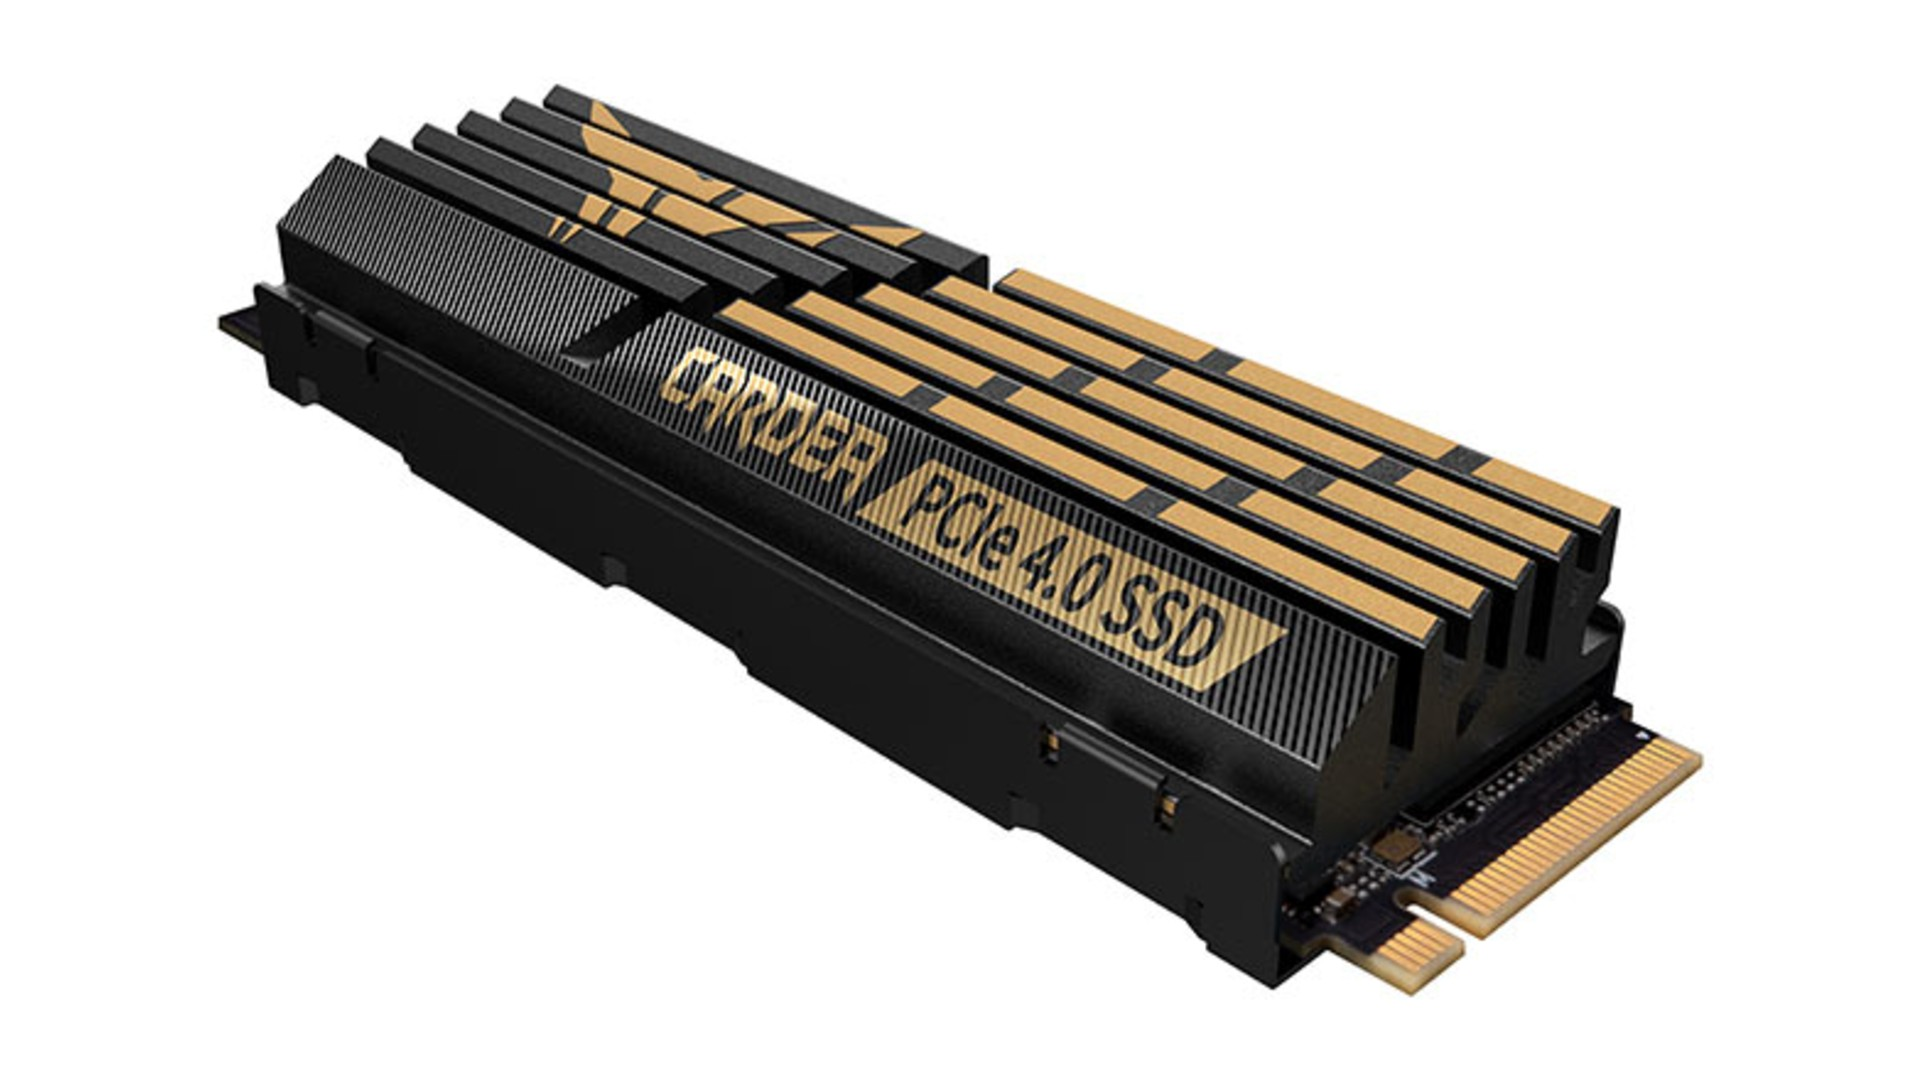 Another super fast 7GB/s PCIe 4.0 NVMe SSD is here, this time from Teamgroup